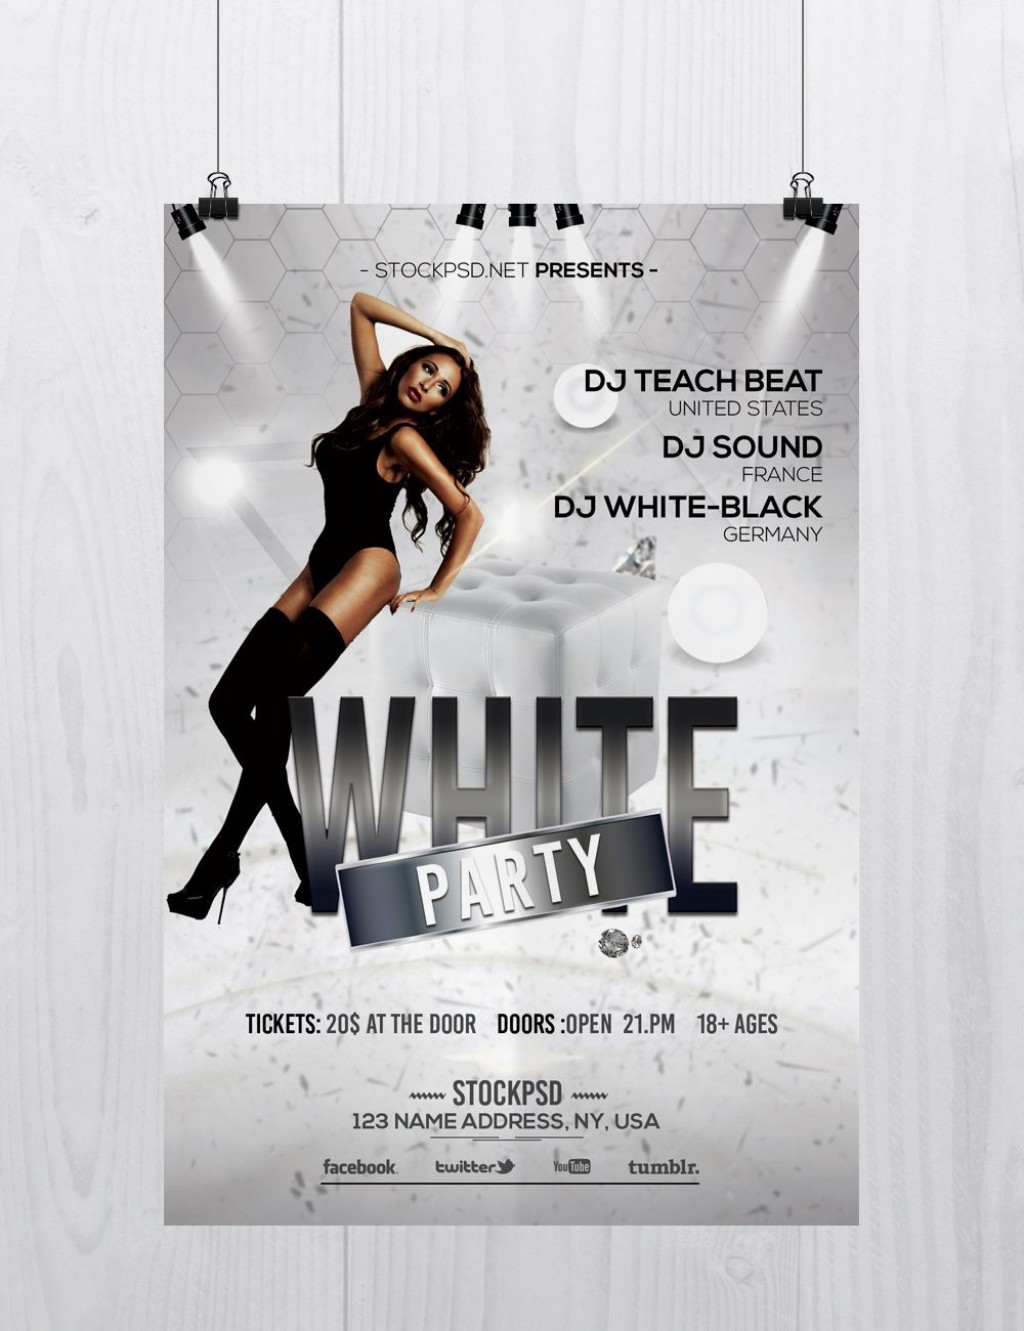 003 Unforgettable Free Party Flyer Template For Photoshop Photo  Pool Psd DownloadLarge